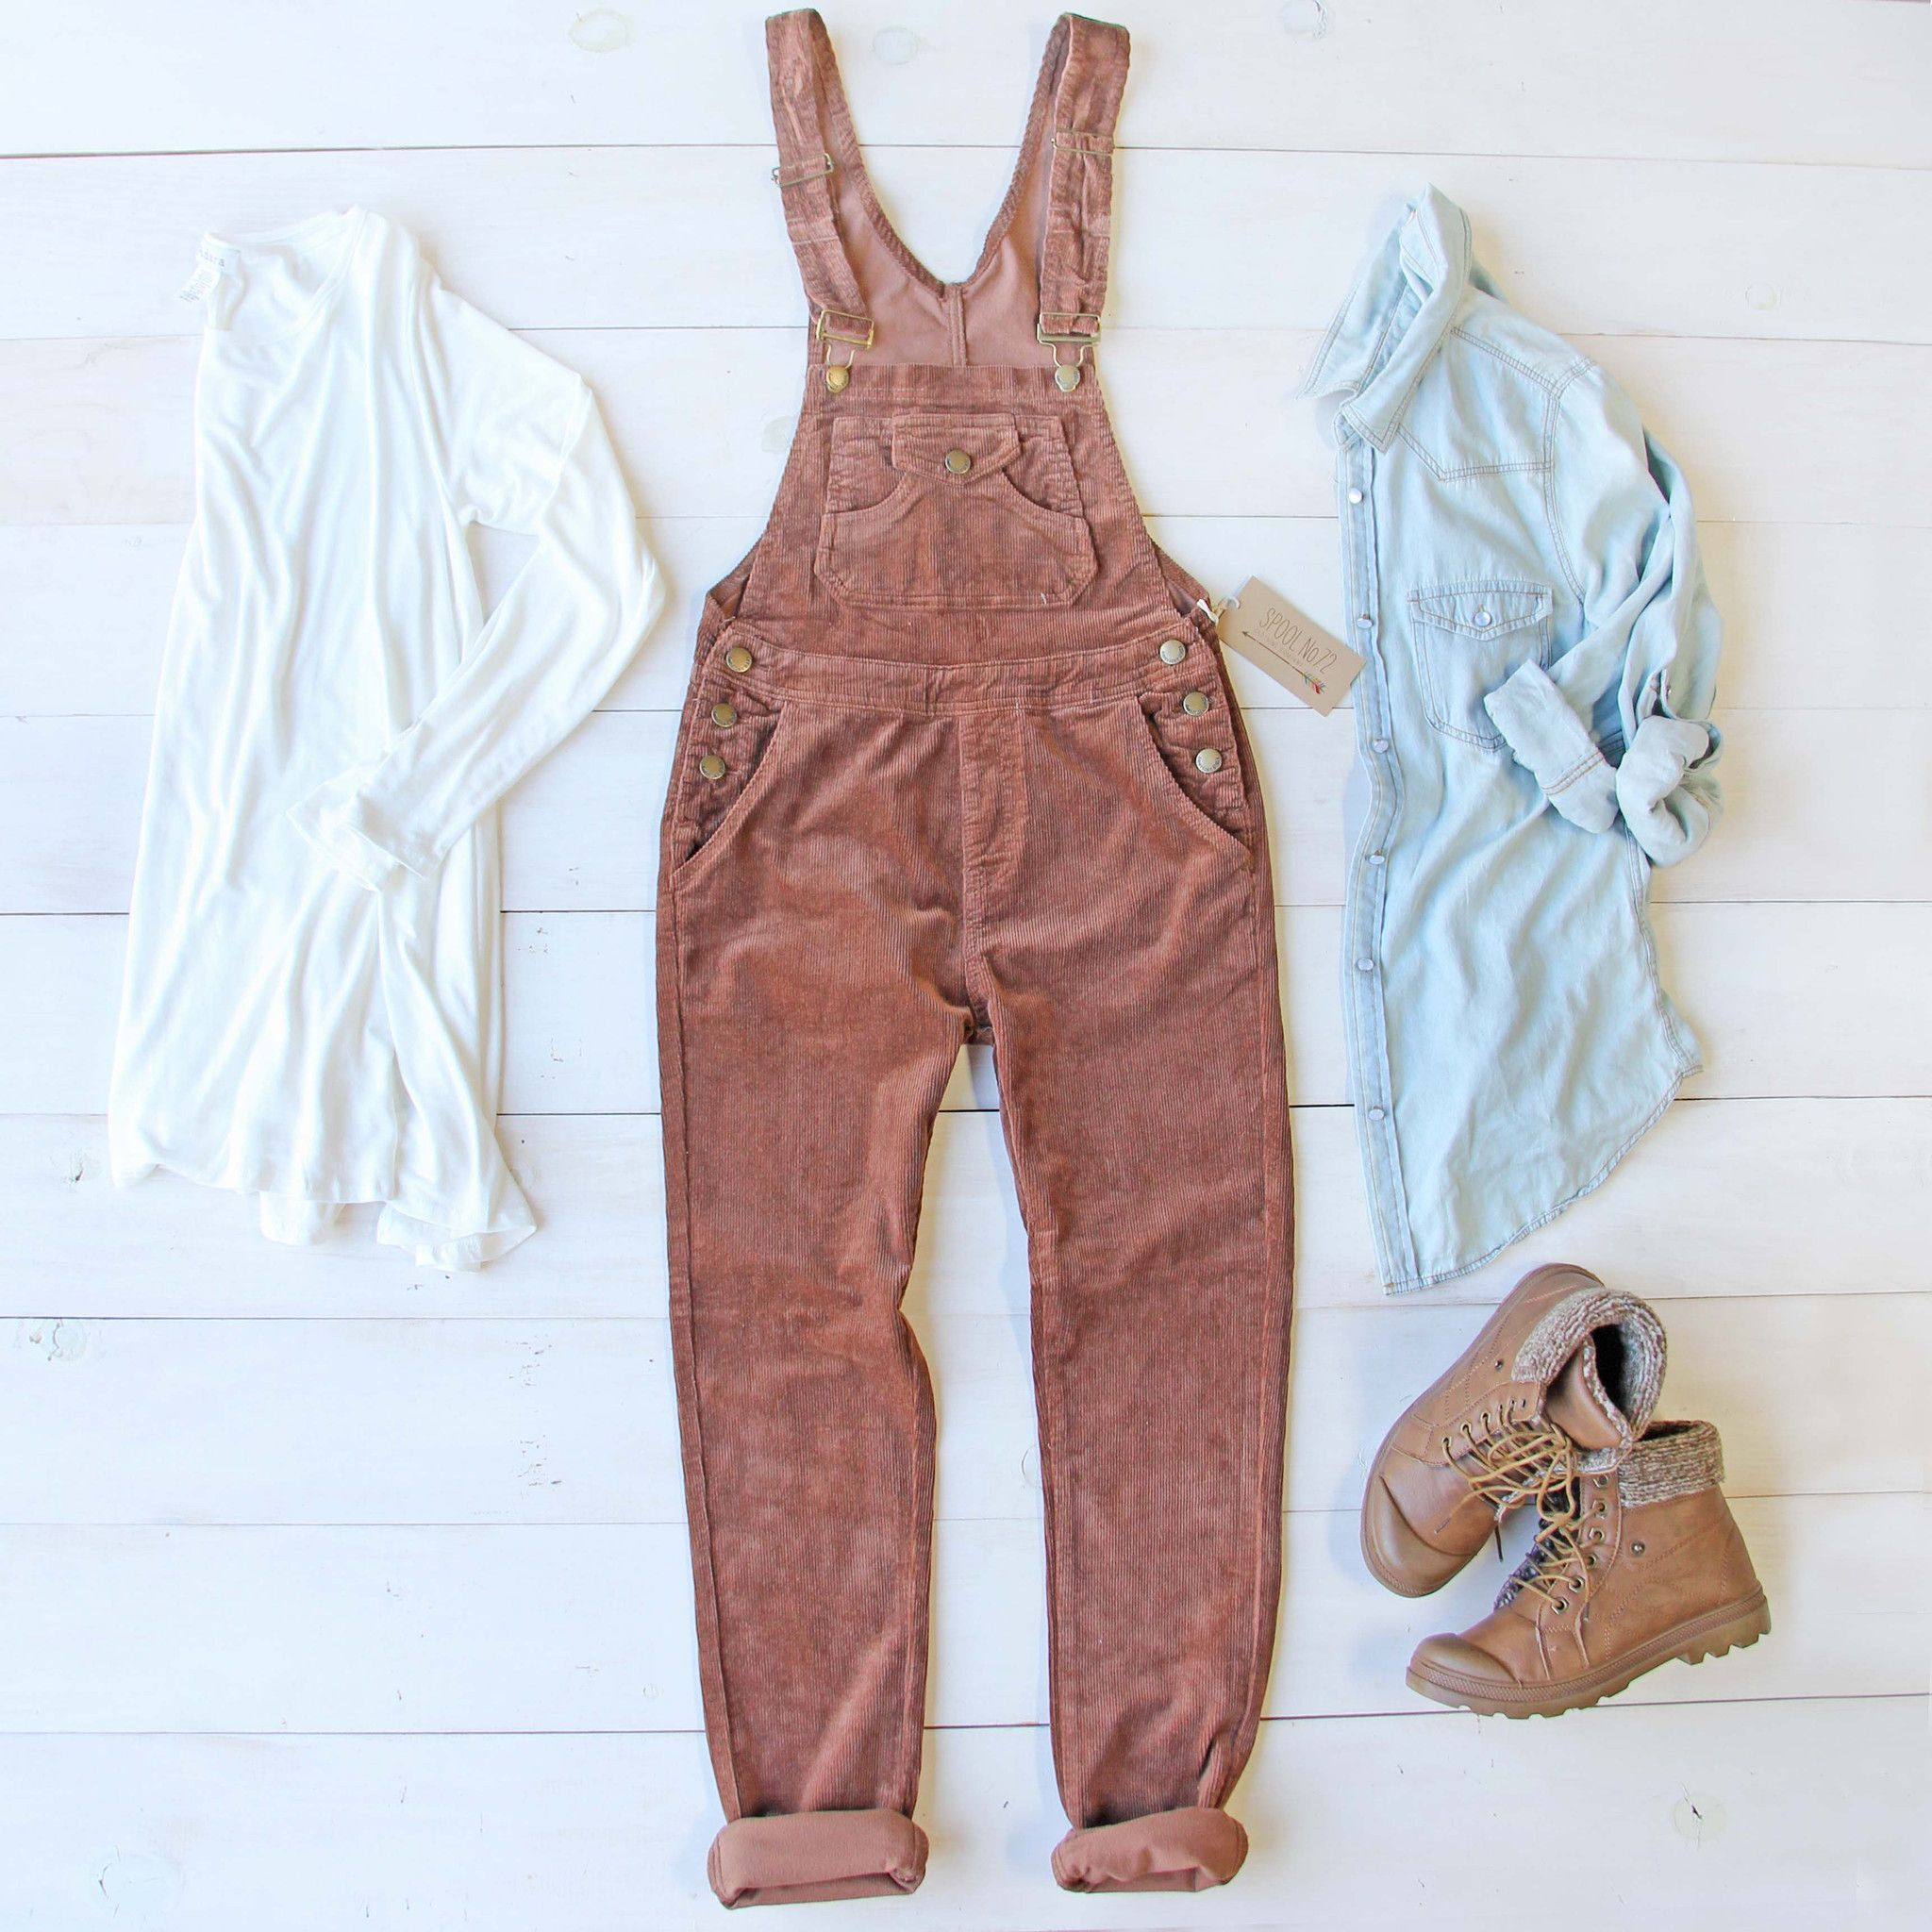 f6fbe146f5 Sweet rust tones adorn these cozy corduroy overalls. A soft brushed corduroy  base pairs with a traditional overall styling